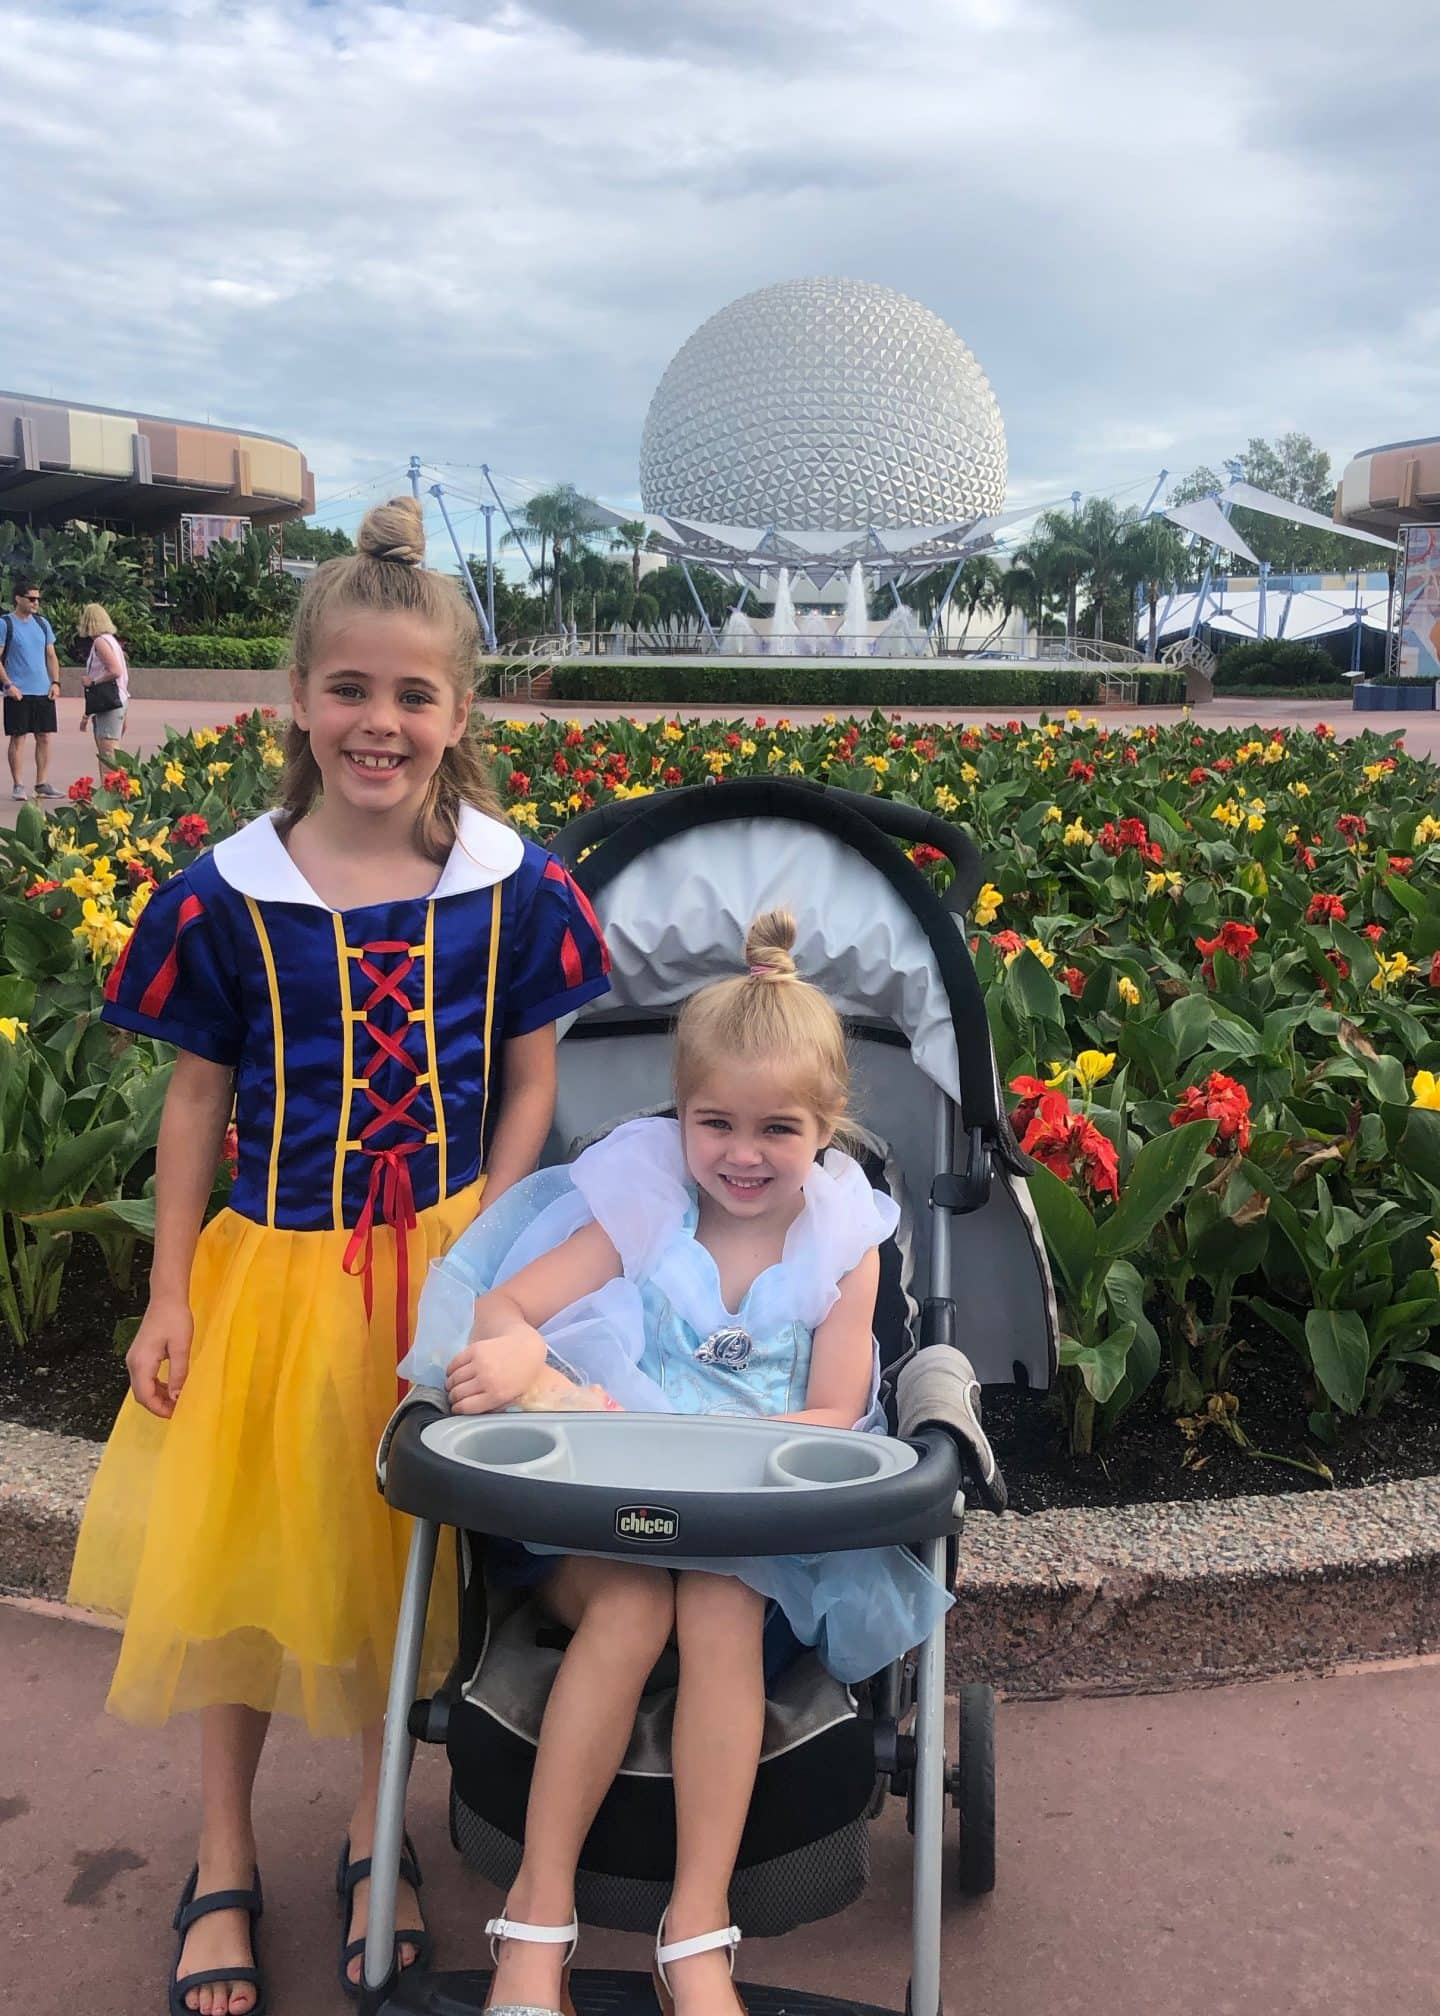 girls in princess dresses at Epcot